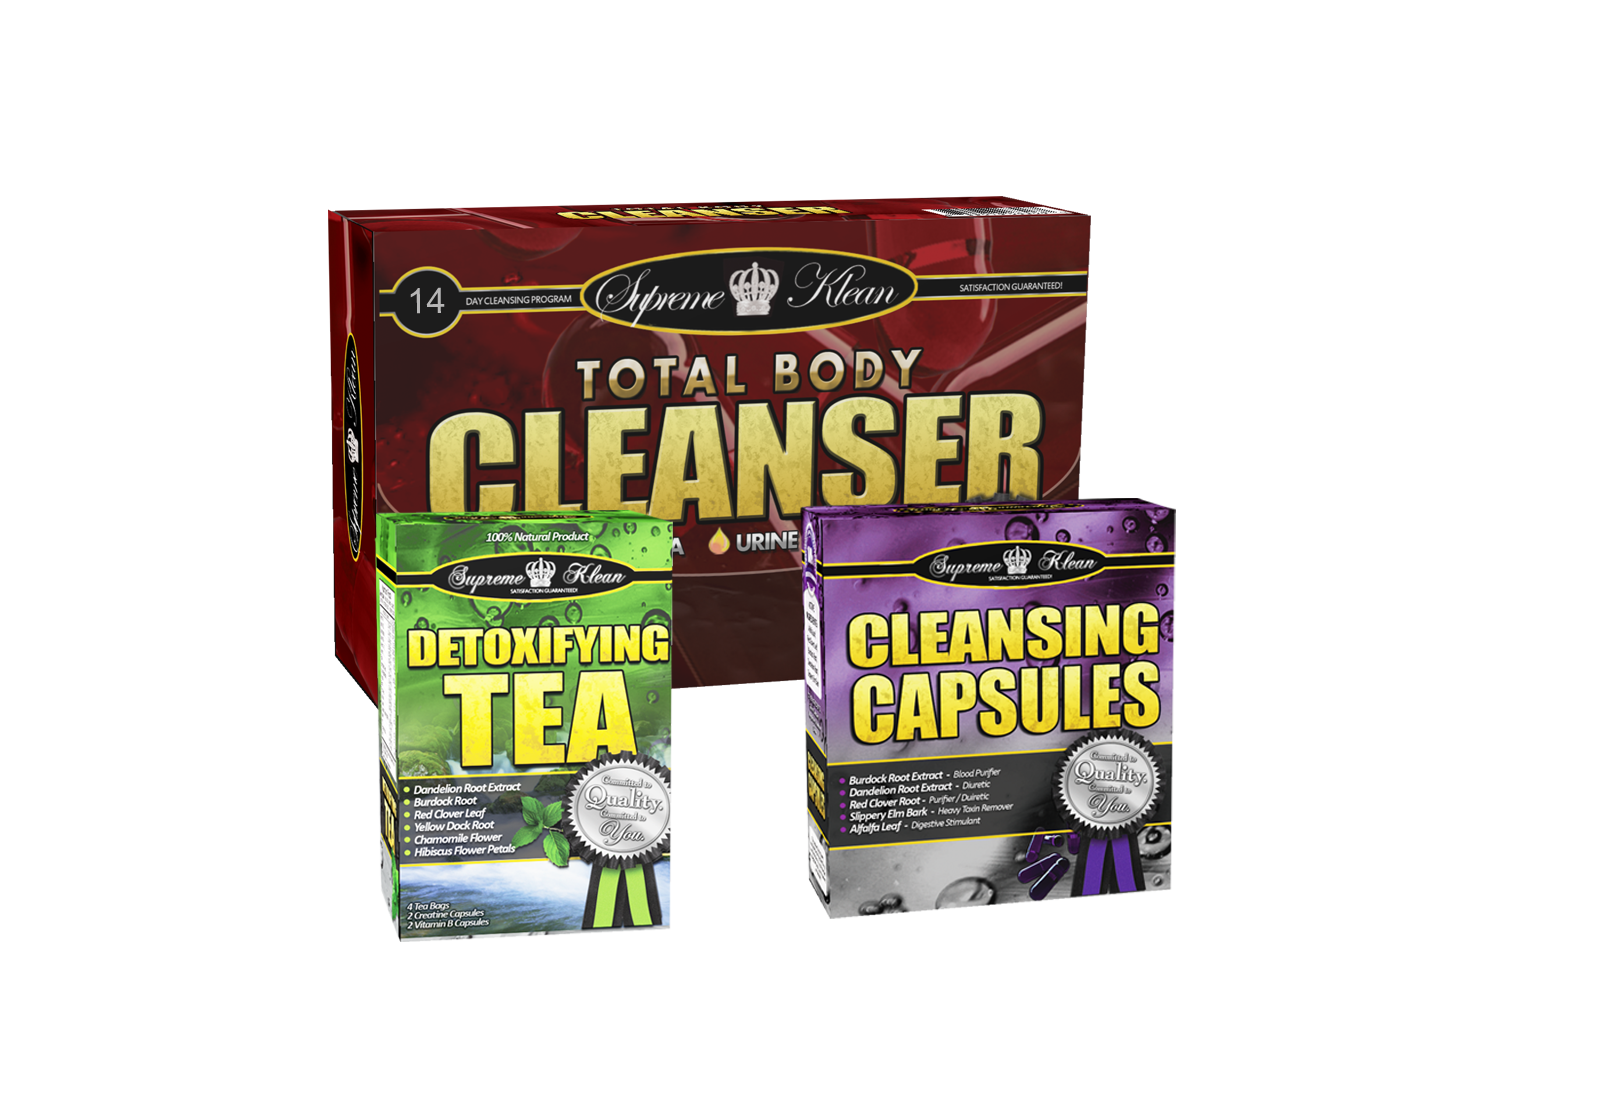 14 Day Total Body Cleanser for THC